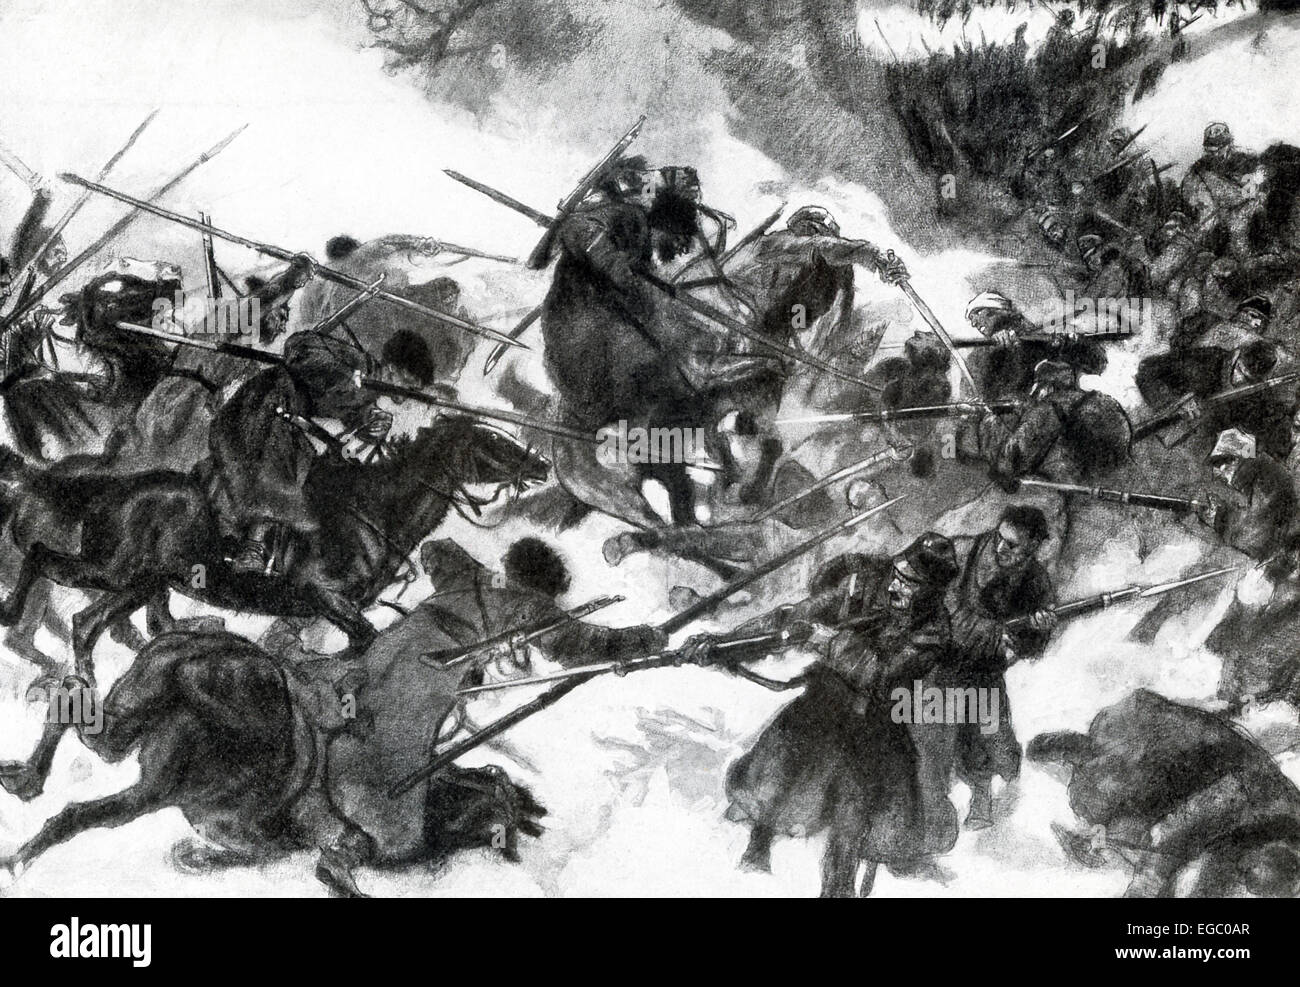 In this 1917 illustration, Cossacks are shown clashing with Austrian cavalry during World War I. Toward the end - Stock Image